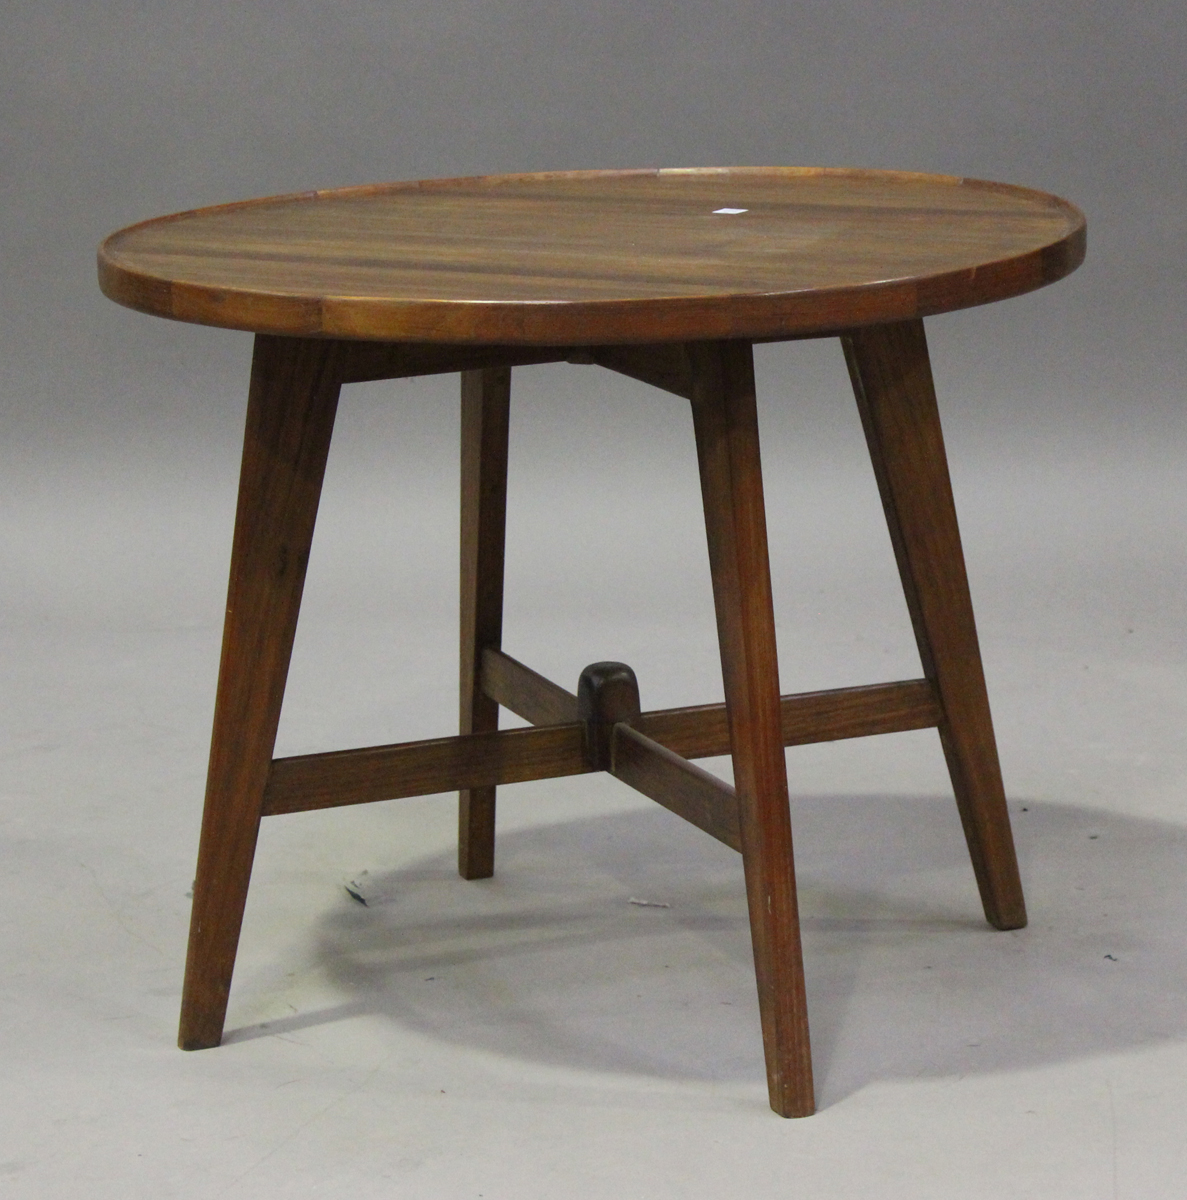 A mid-20th century teak circular occasional table of retro design, the planked top with raised edge,